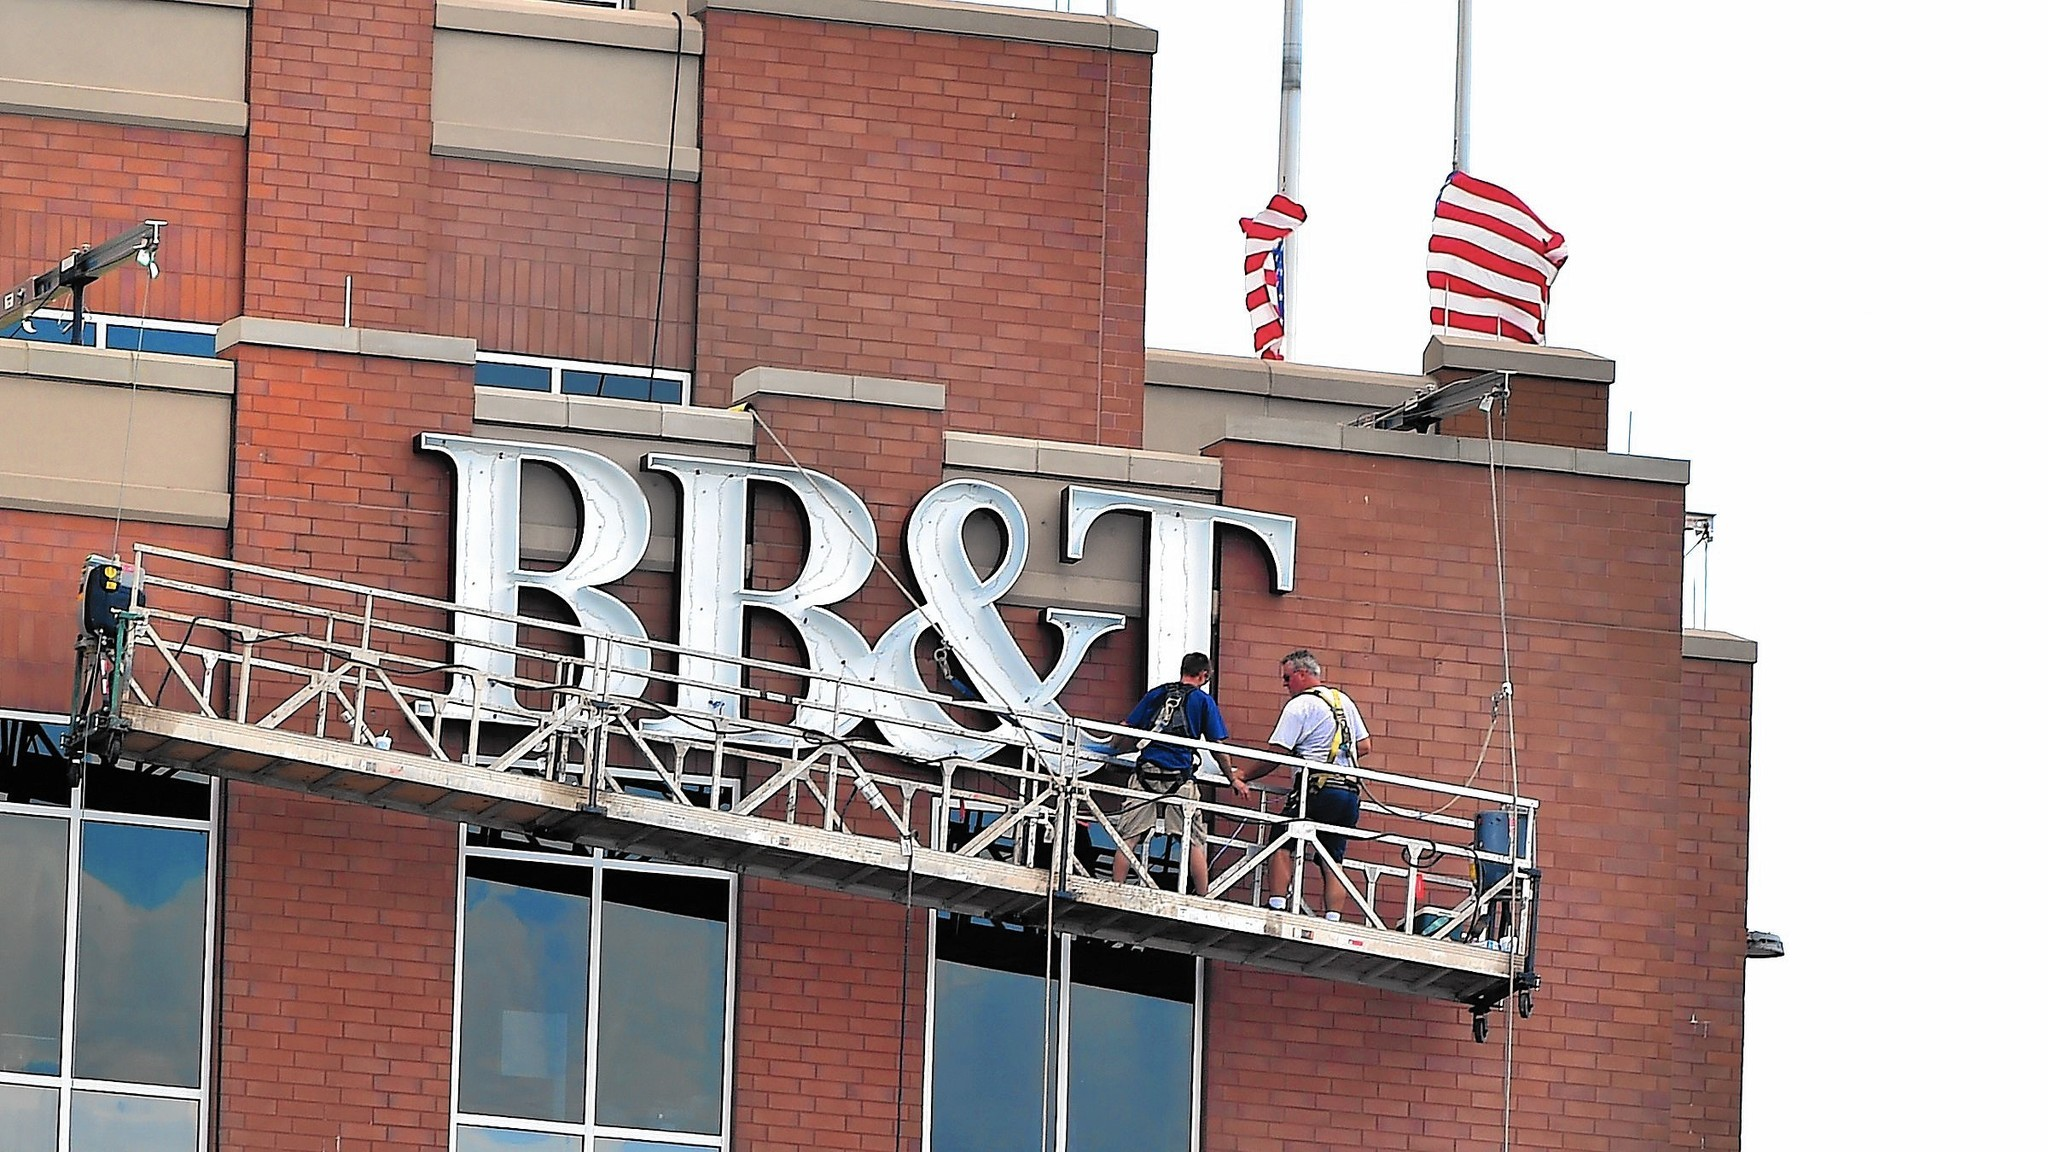 bb&t and wells fargo